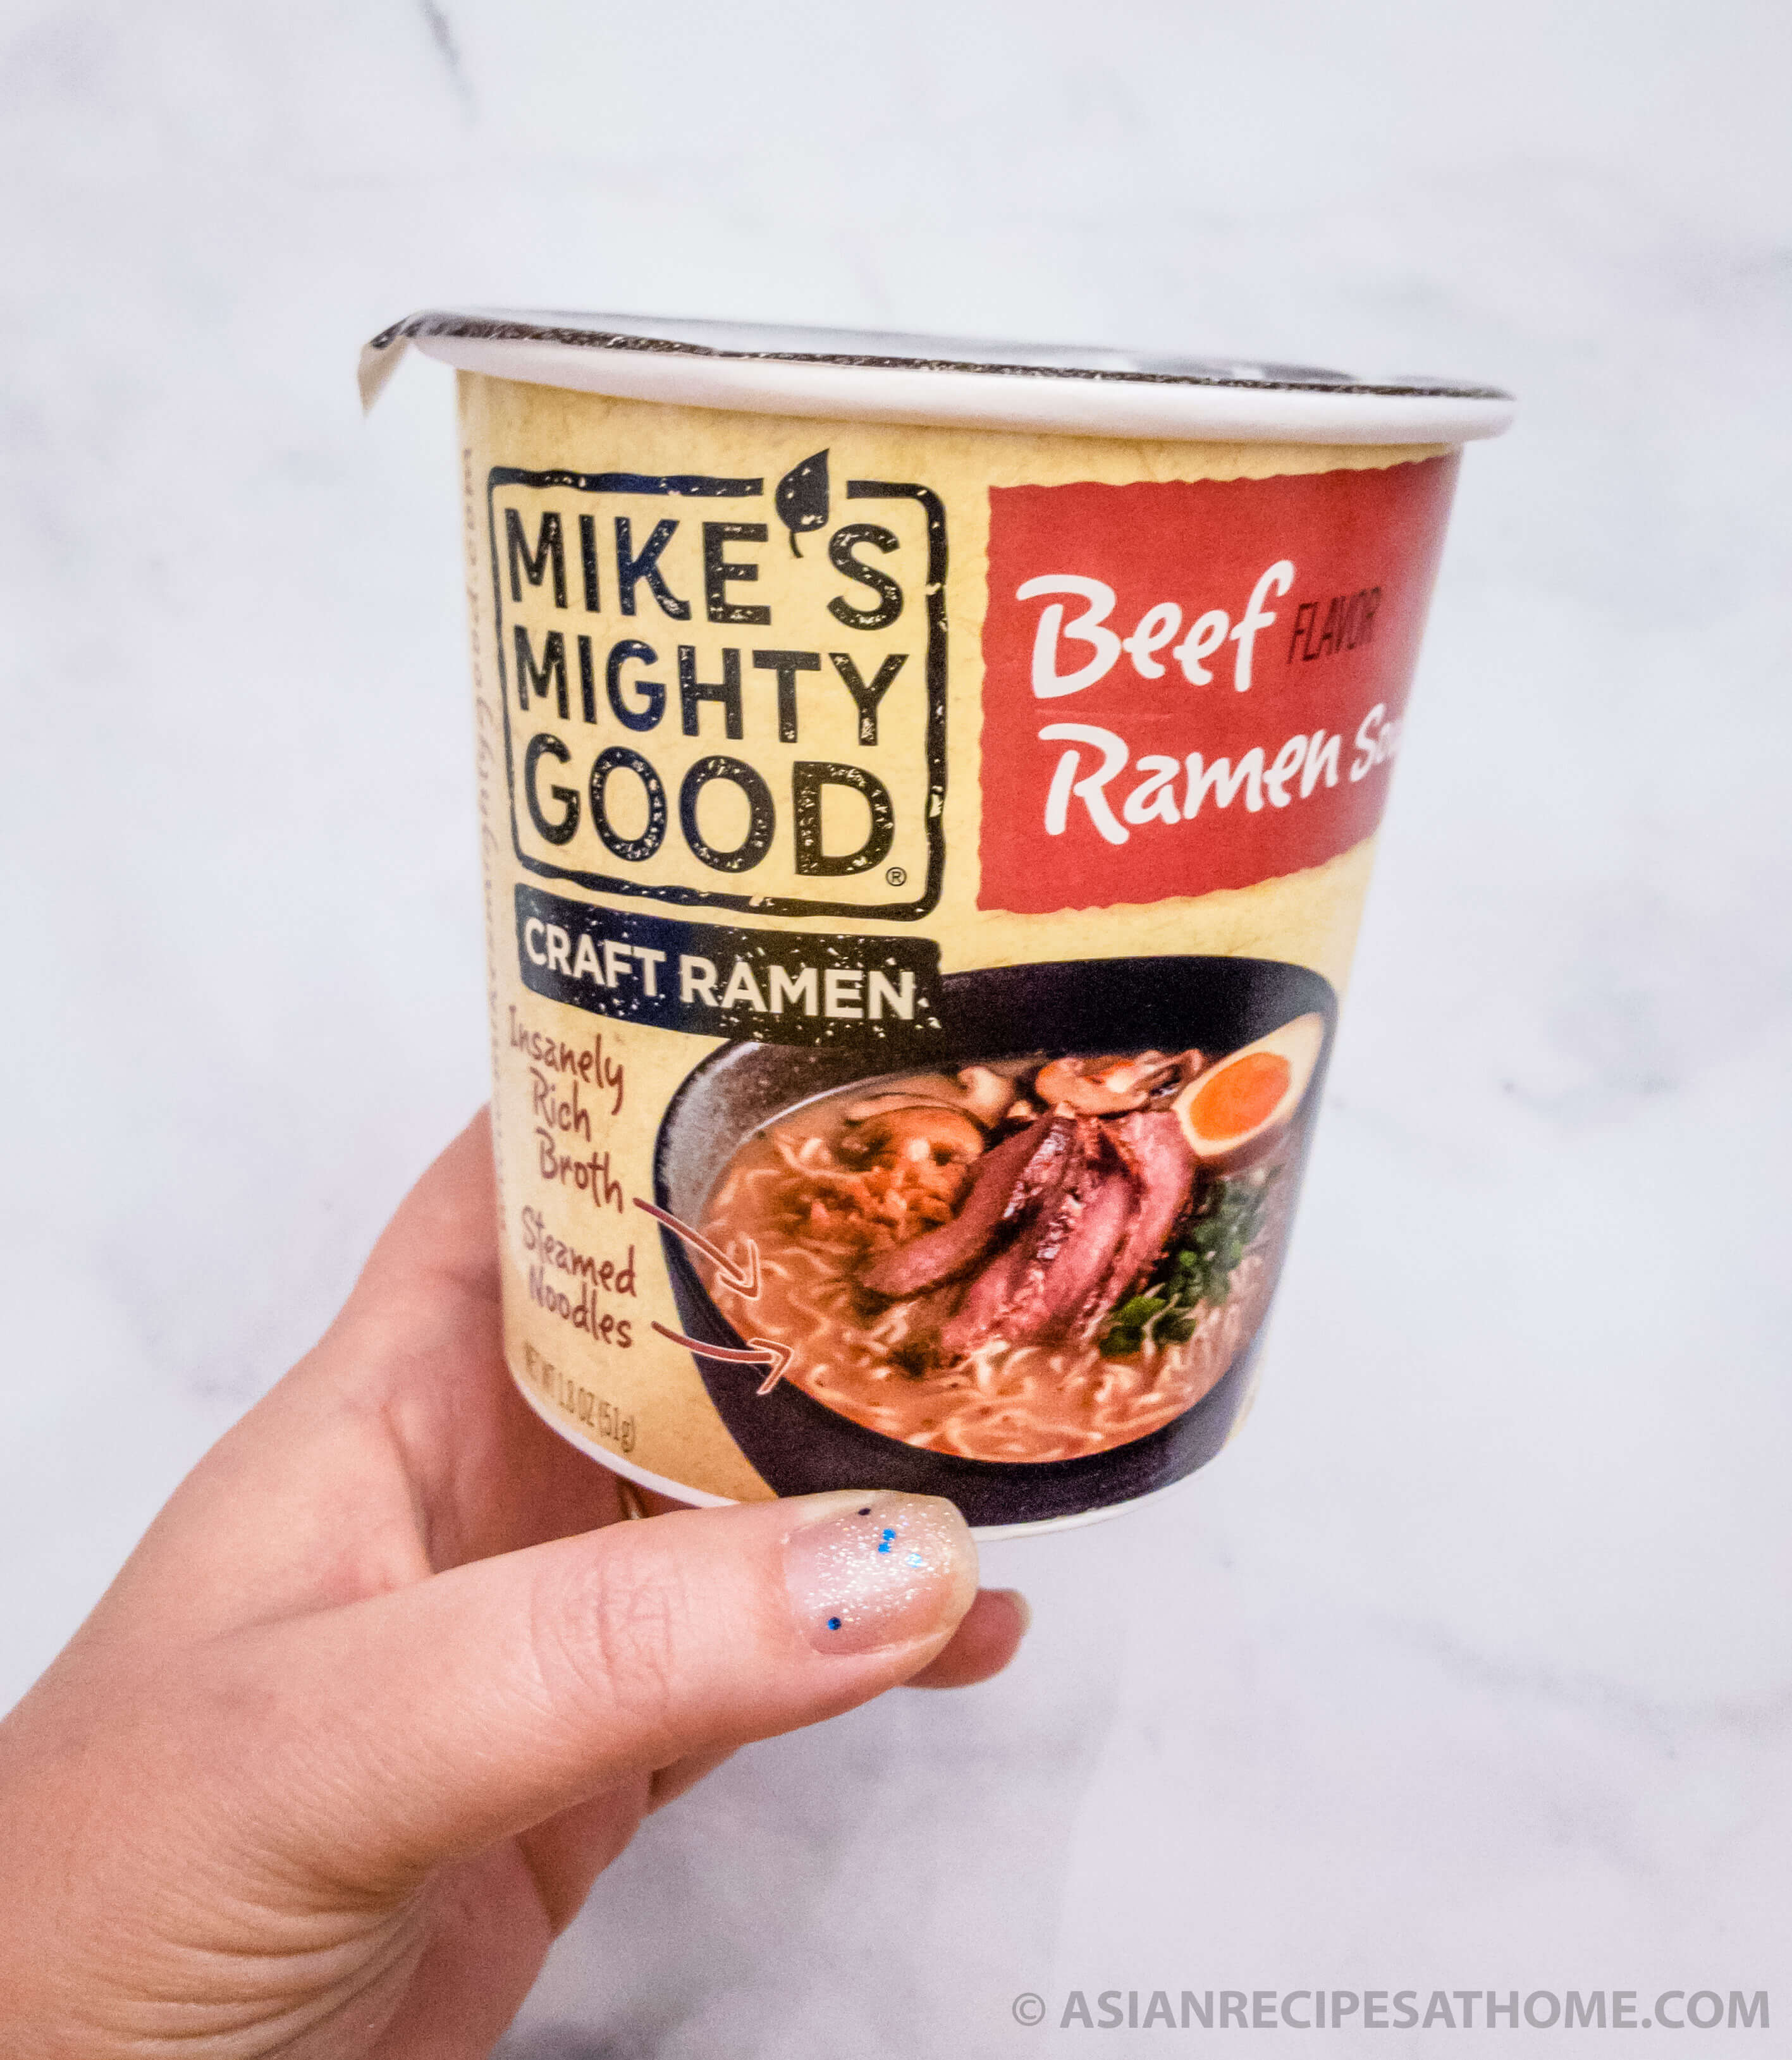 This is a delicious upgraded version of instant ramen. We decided to try out Mike's Mighty Good Craft Ramen for this review and instant ramen hack, and we weren't disappointed.